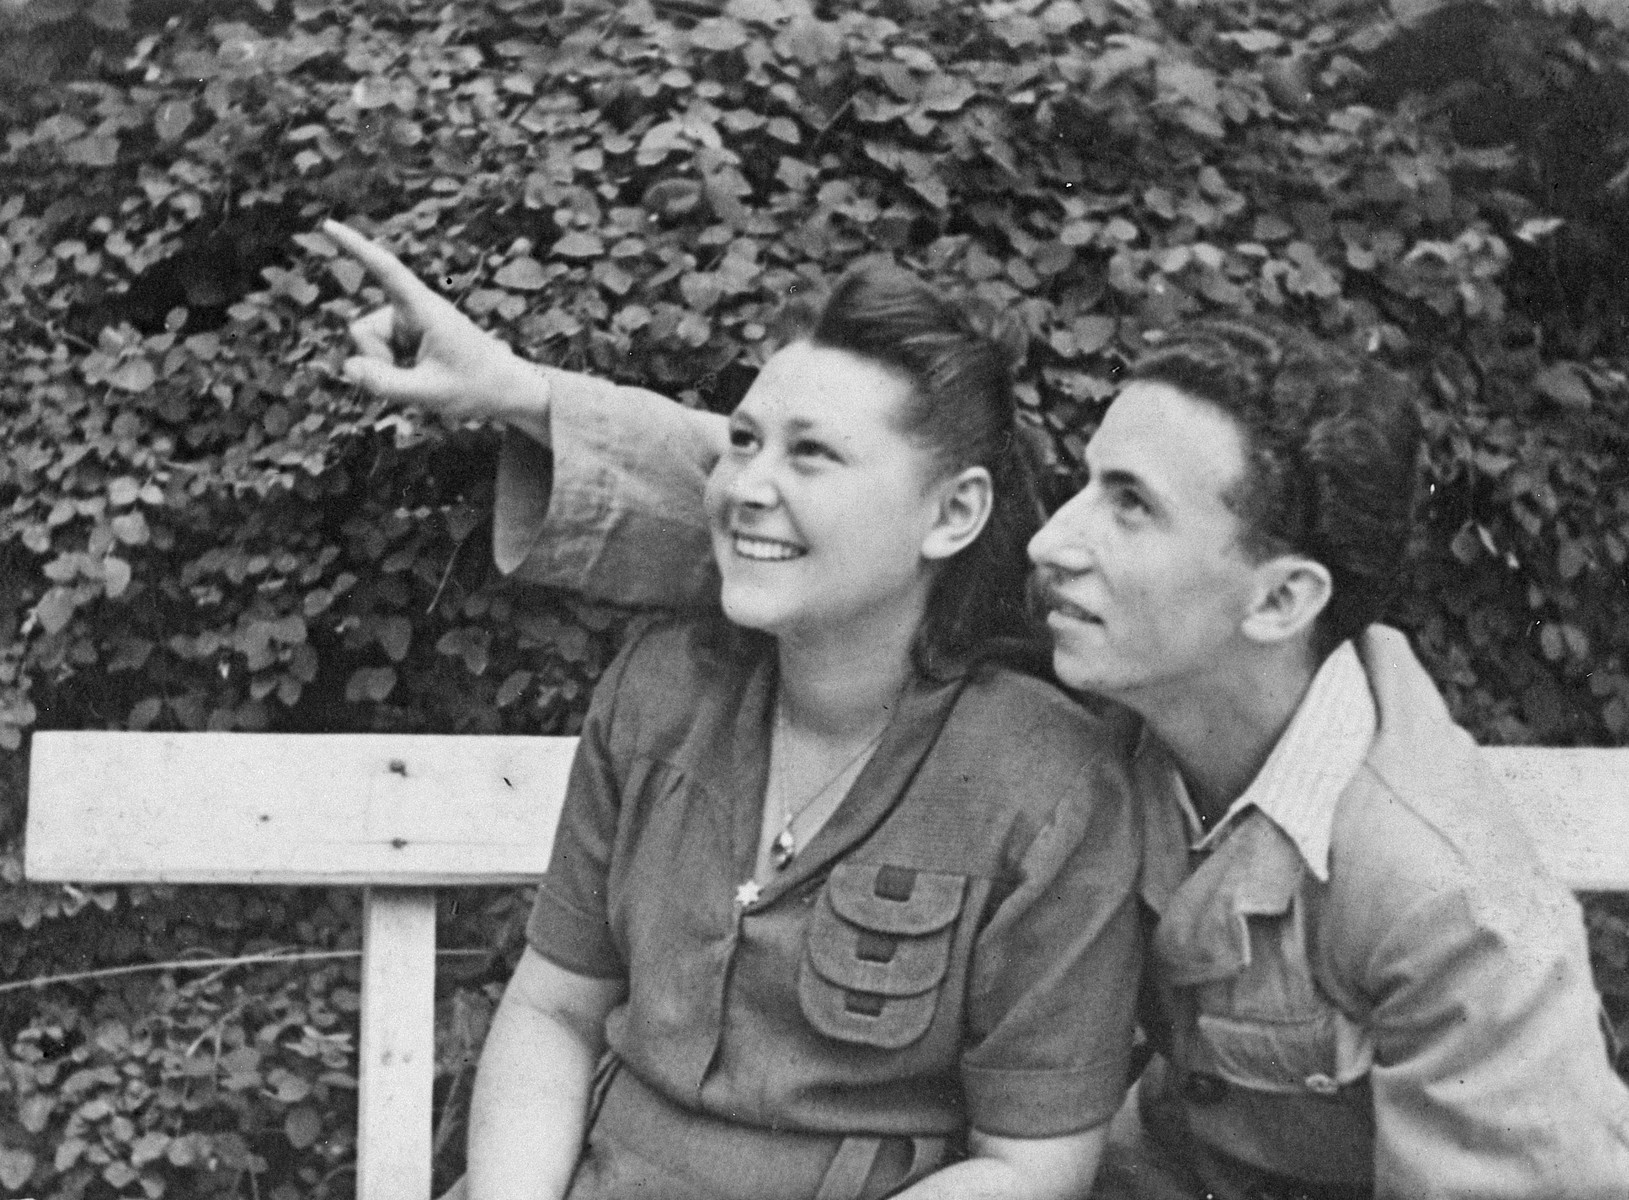 A young couple sits on a bench in the Leipheim DP camp and looks up at something in the sky.  Pictured are Rachel and Lolek Grynfeld.